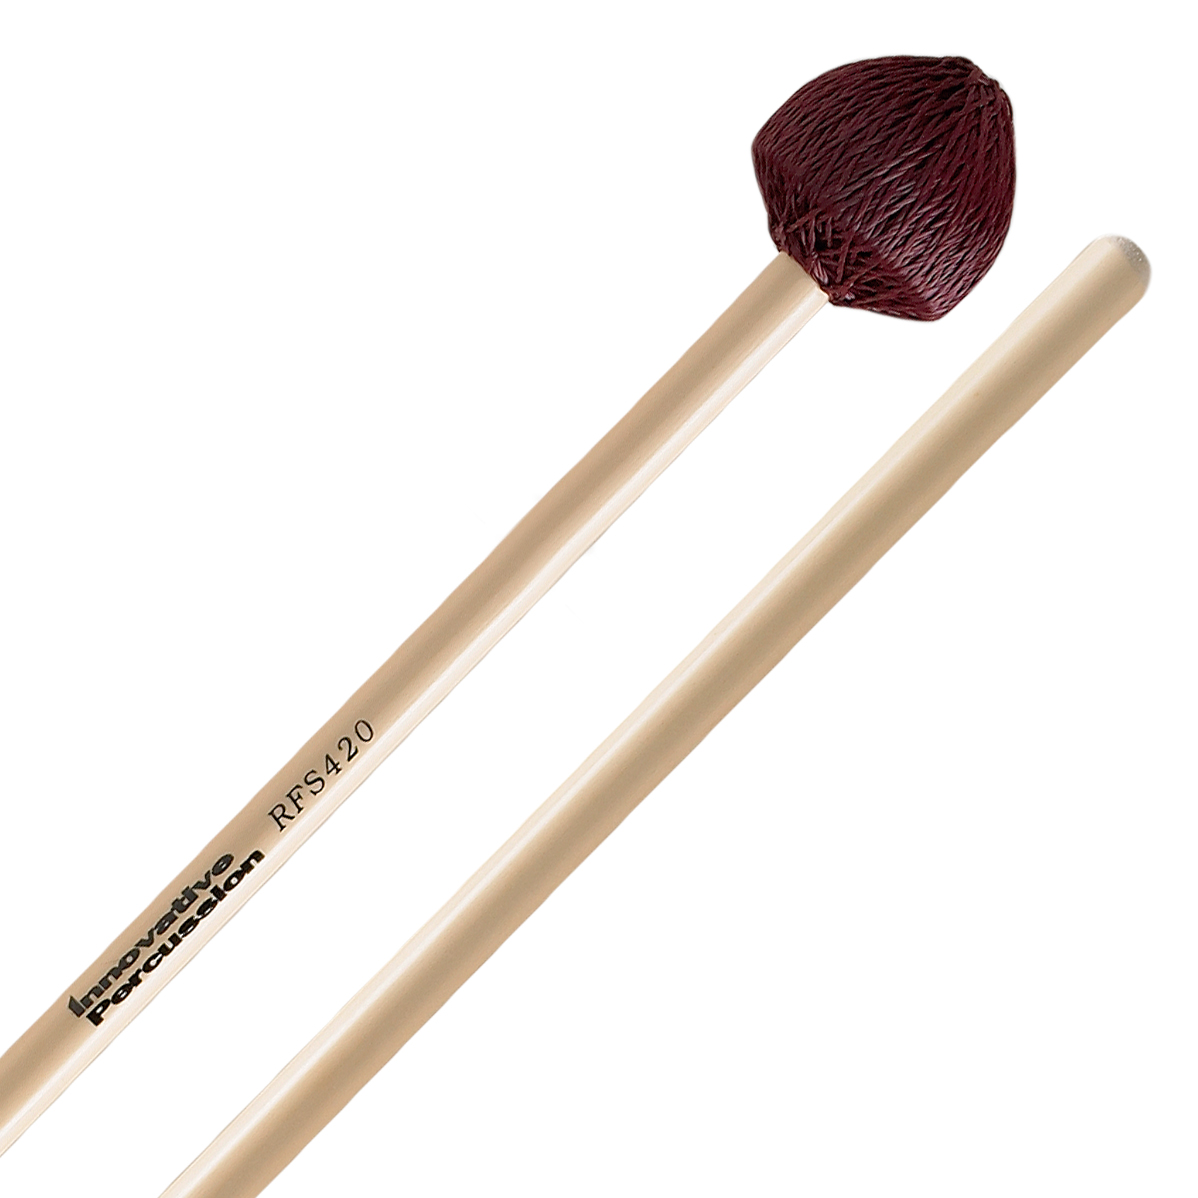 Innovative Percussion RFS420 Field Series Hard Vibraphone Mallets